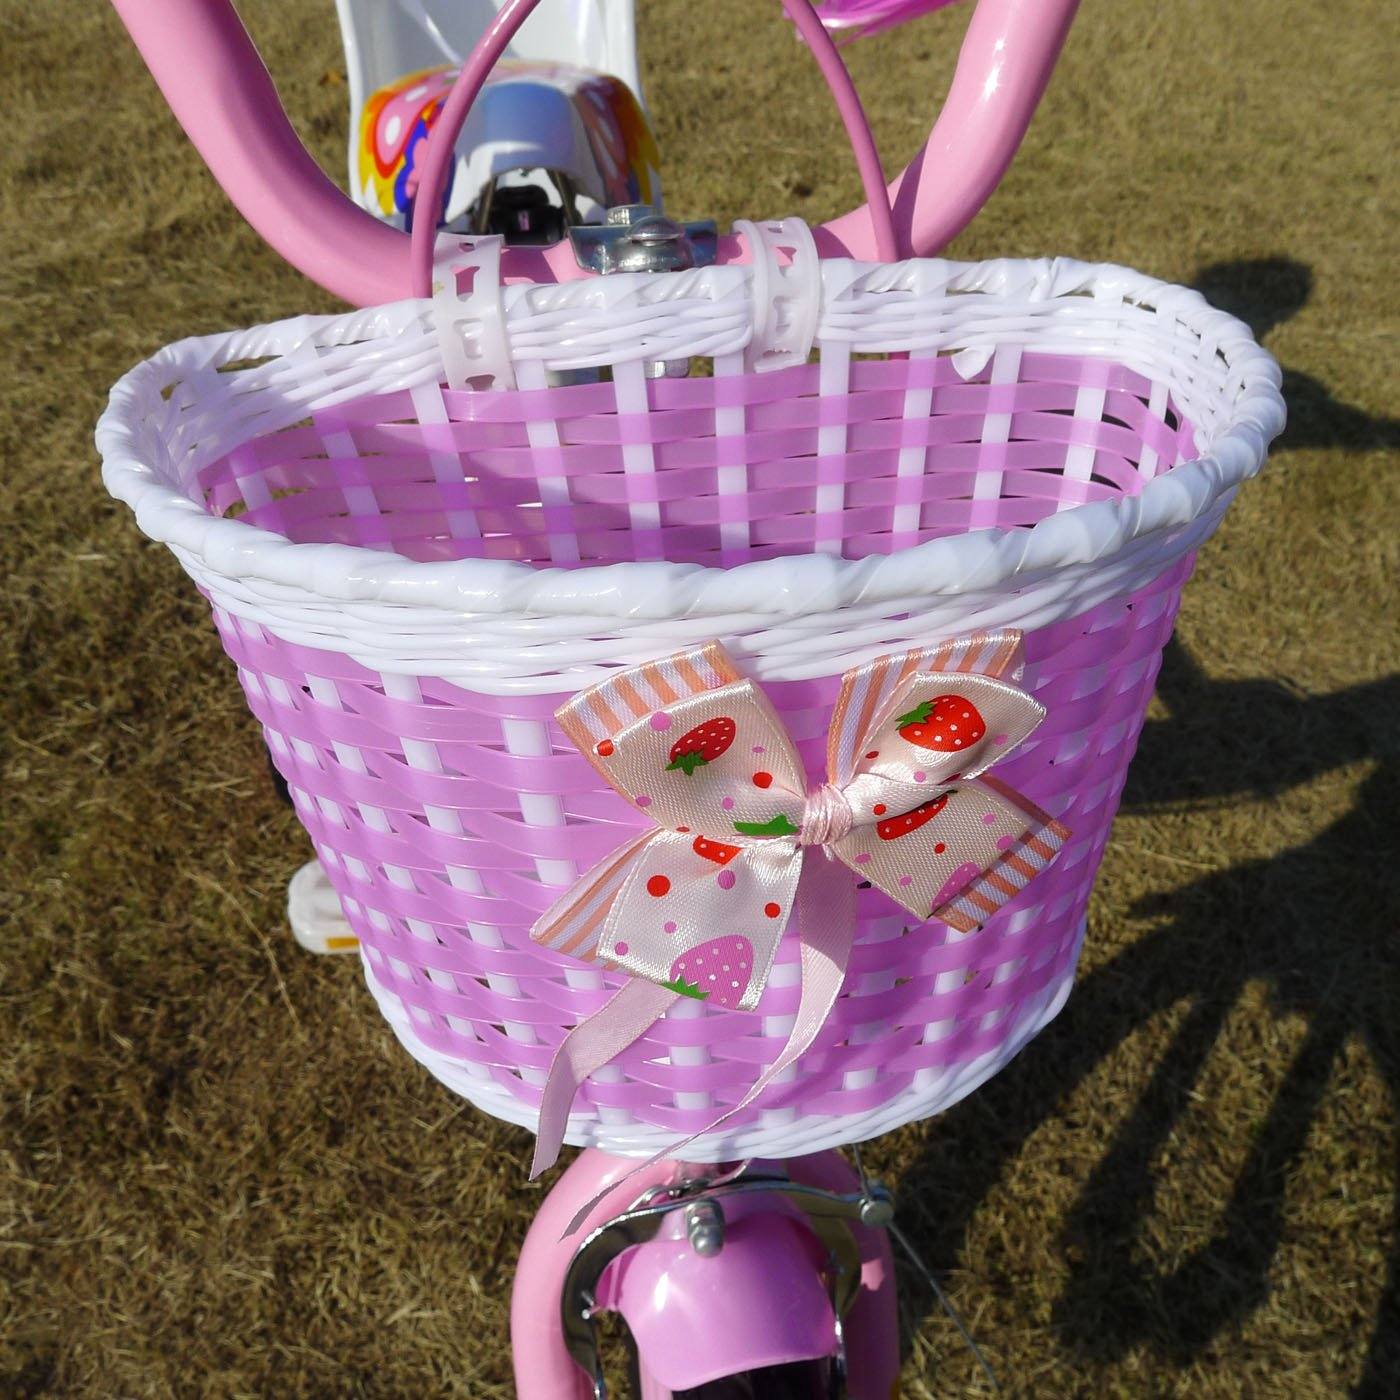 American Phoenix 12-Inch Wheel Girls Bicycle with Seat by American Phoenix (Image #5)